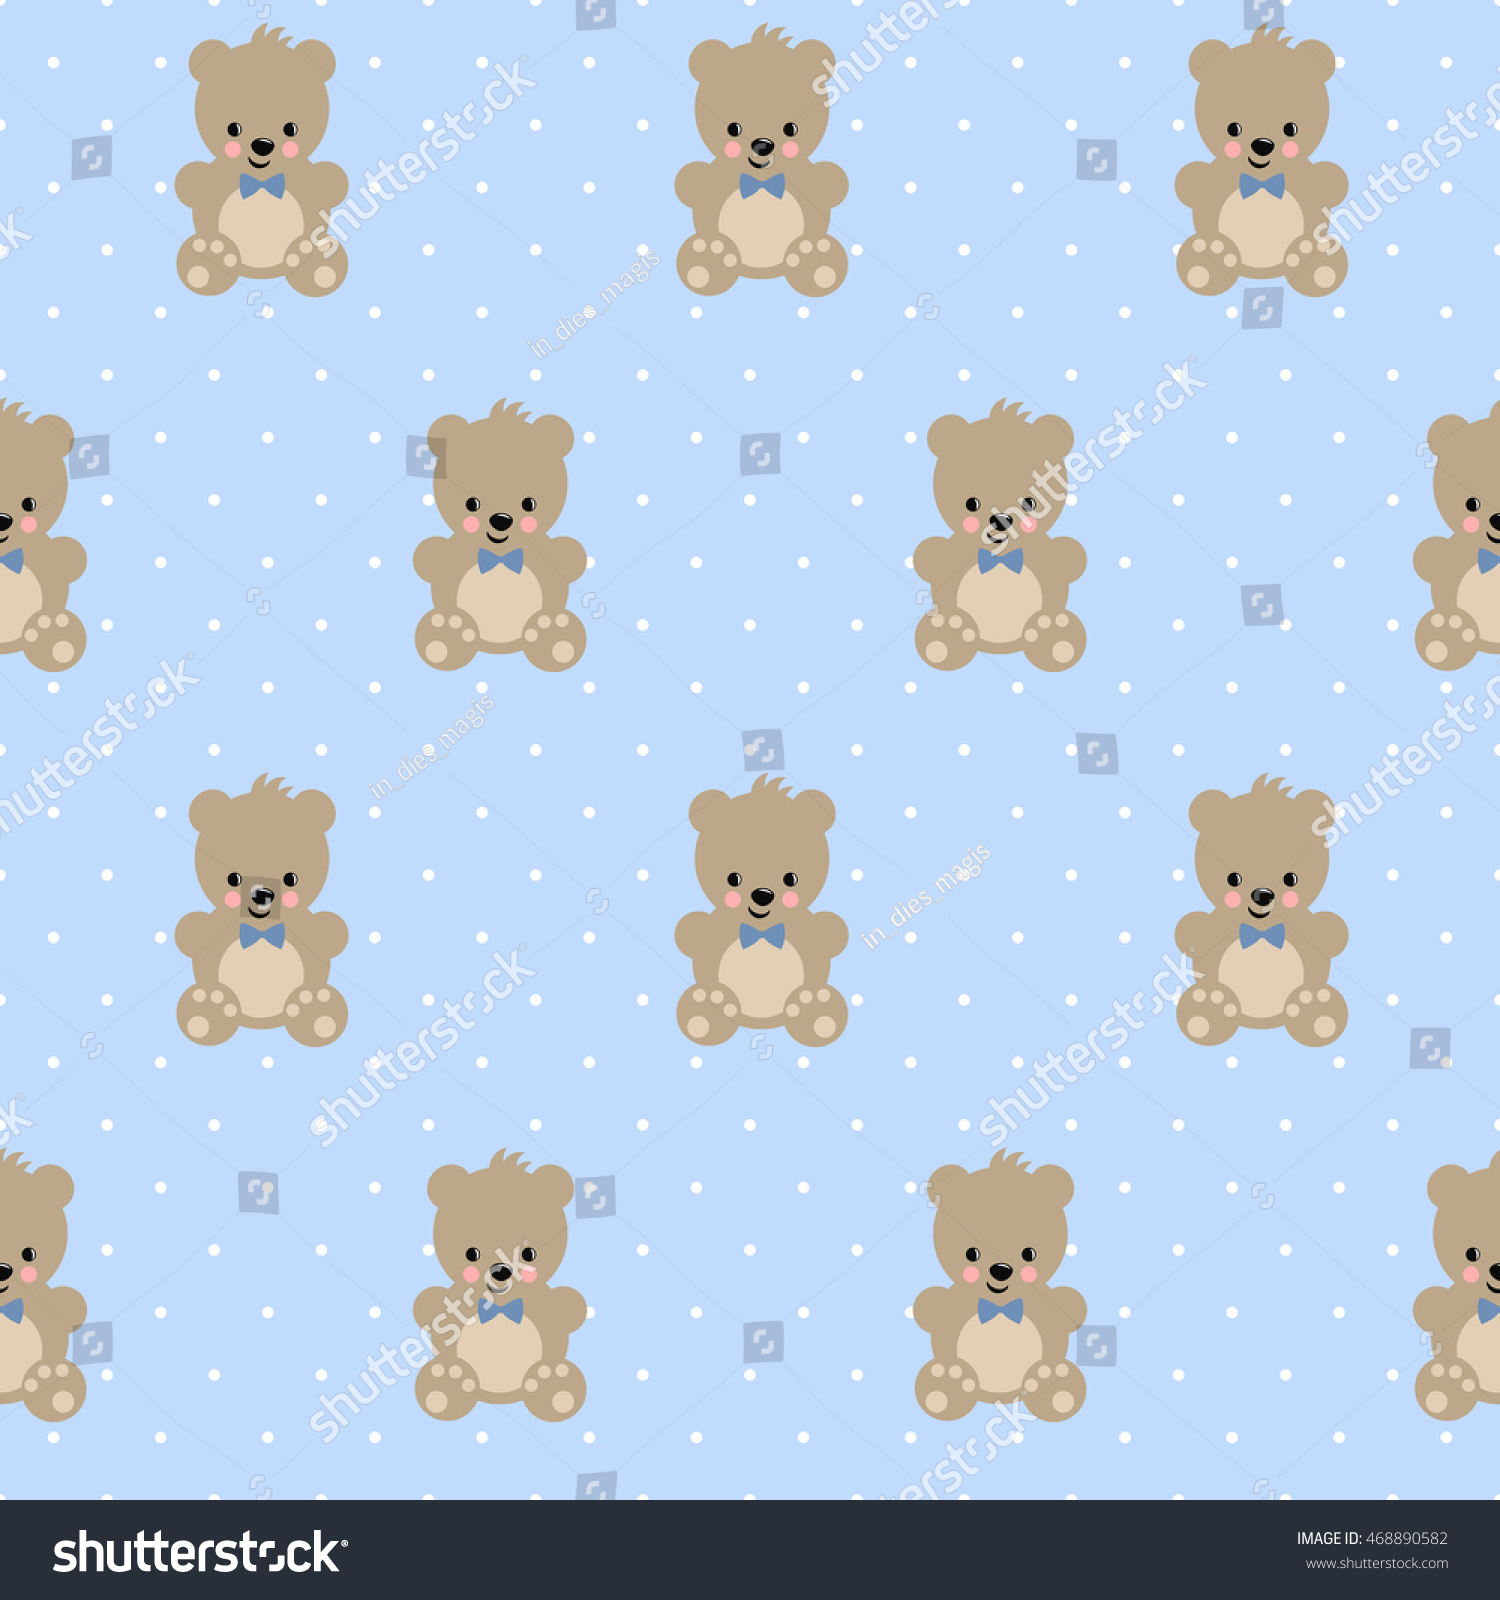 Teddy Bear Seamless Pattern On Baby Blue Polka Dots Background Cute Vector With